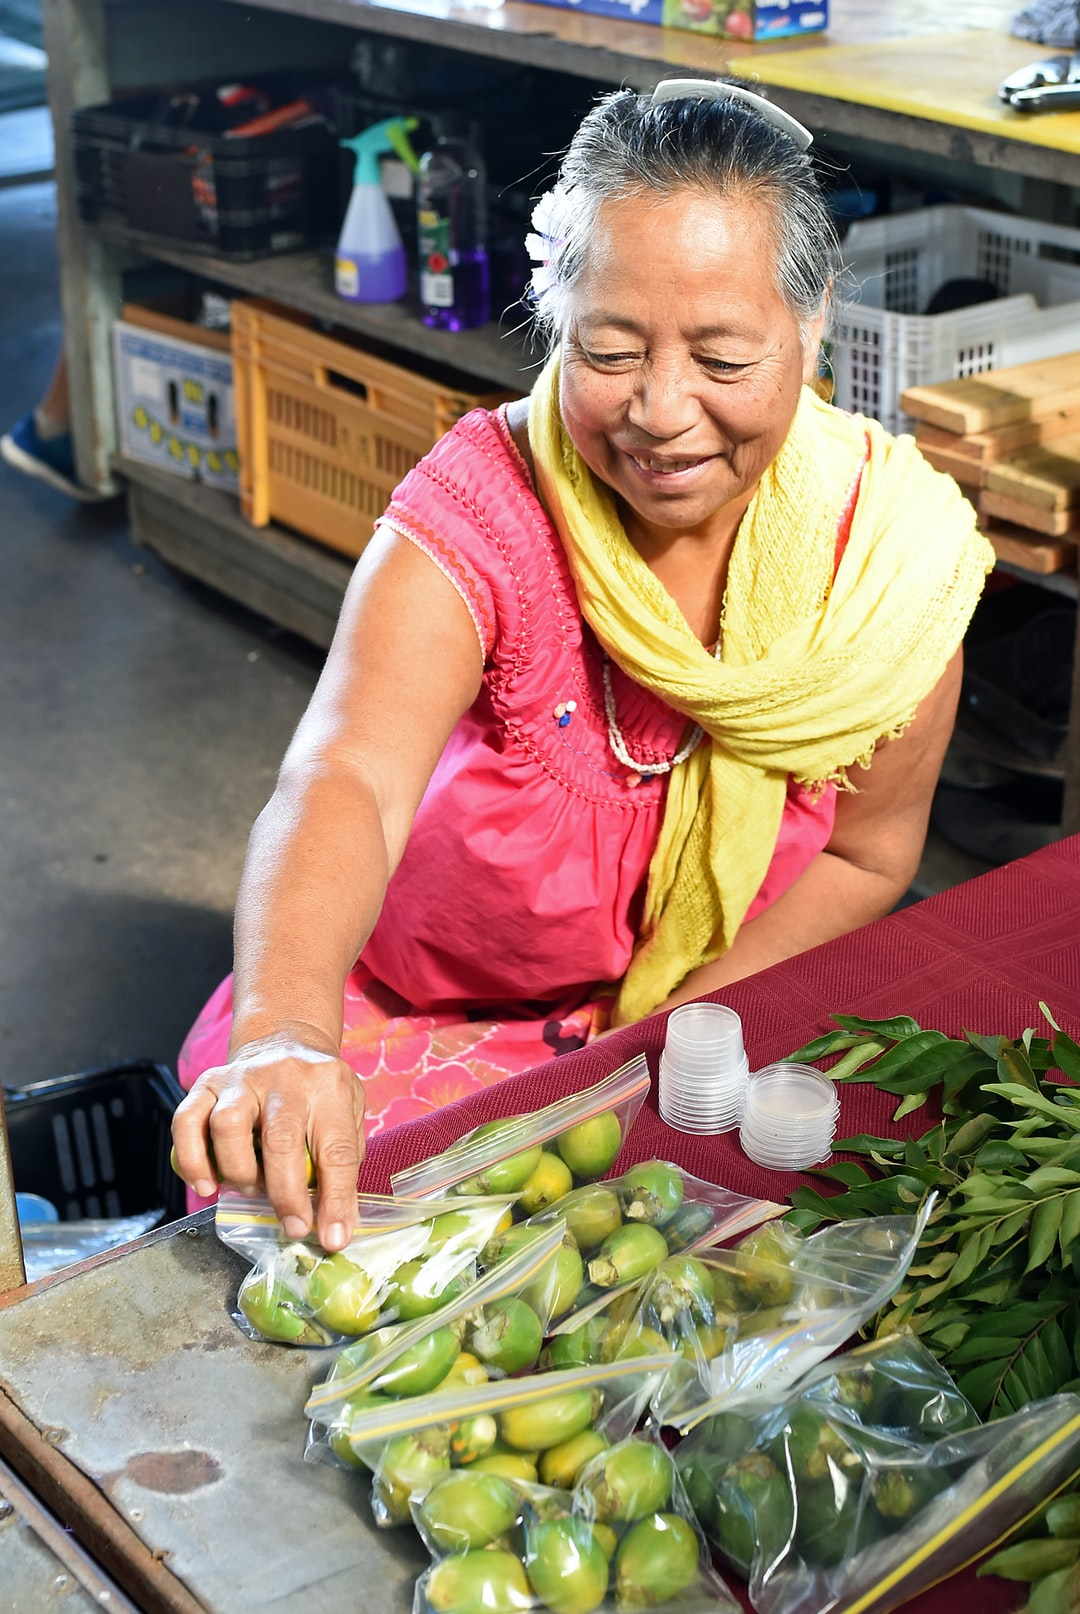 This friendly lady was selling Betel nuts at Rusty's markets in Cairns, Australia. I liked the lighting (through a skylight) and the colours of her clothes, and something of her personality shines through in the photo. Betel nuts are popular for chewing in New Guinea and many Pacific islands, but aren't actually good for you.